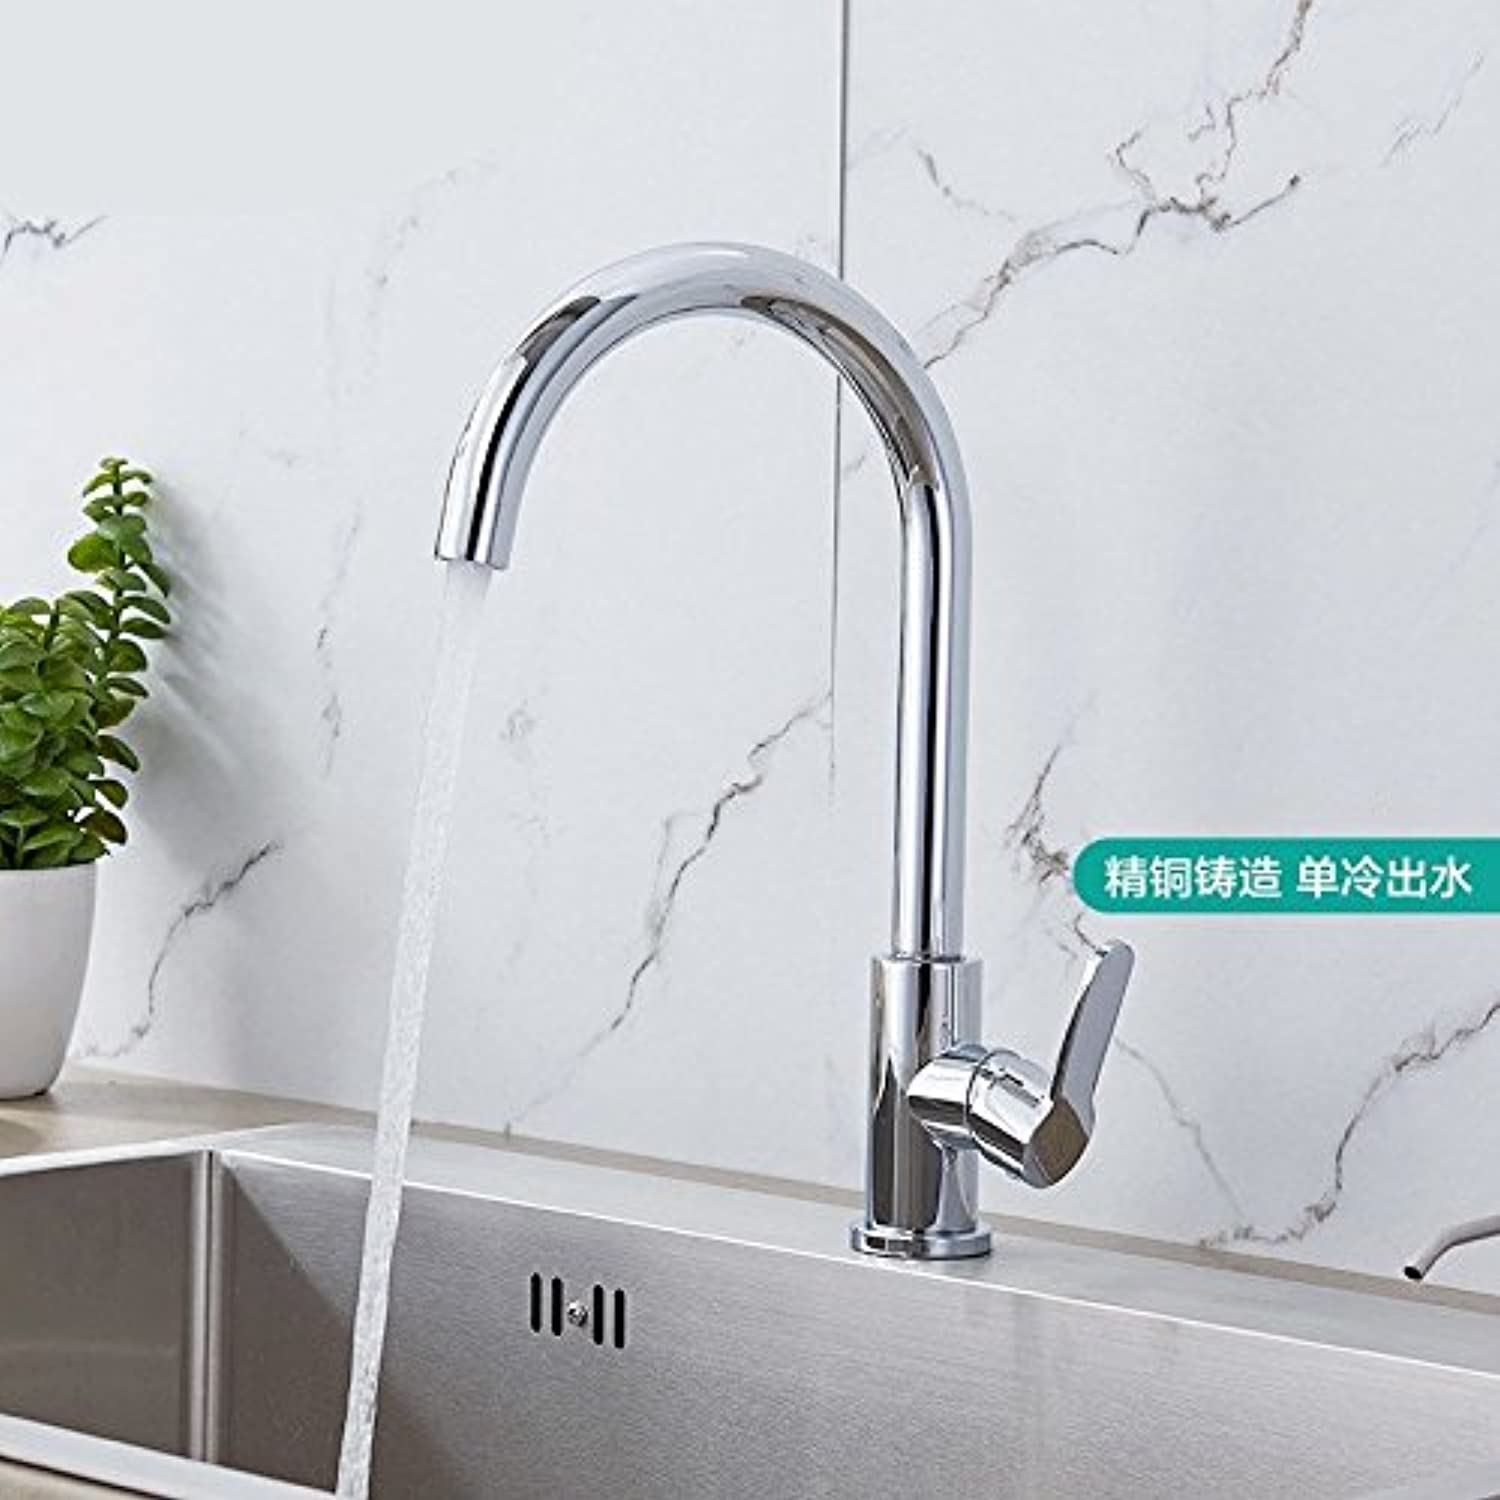 Commercial Single Lever Pull Down Kitchen Sink Faucet Brass Constructed Polished Stainless Steel Kitchen Faucet, Single Cold Sink Sink Faucet